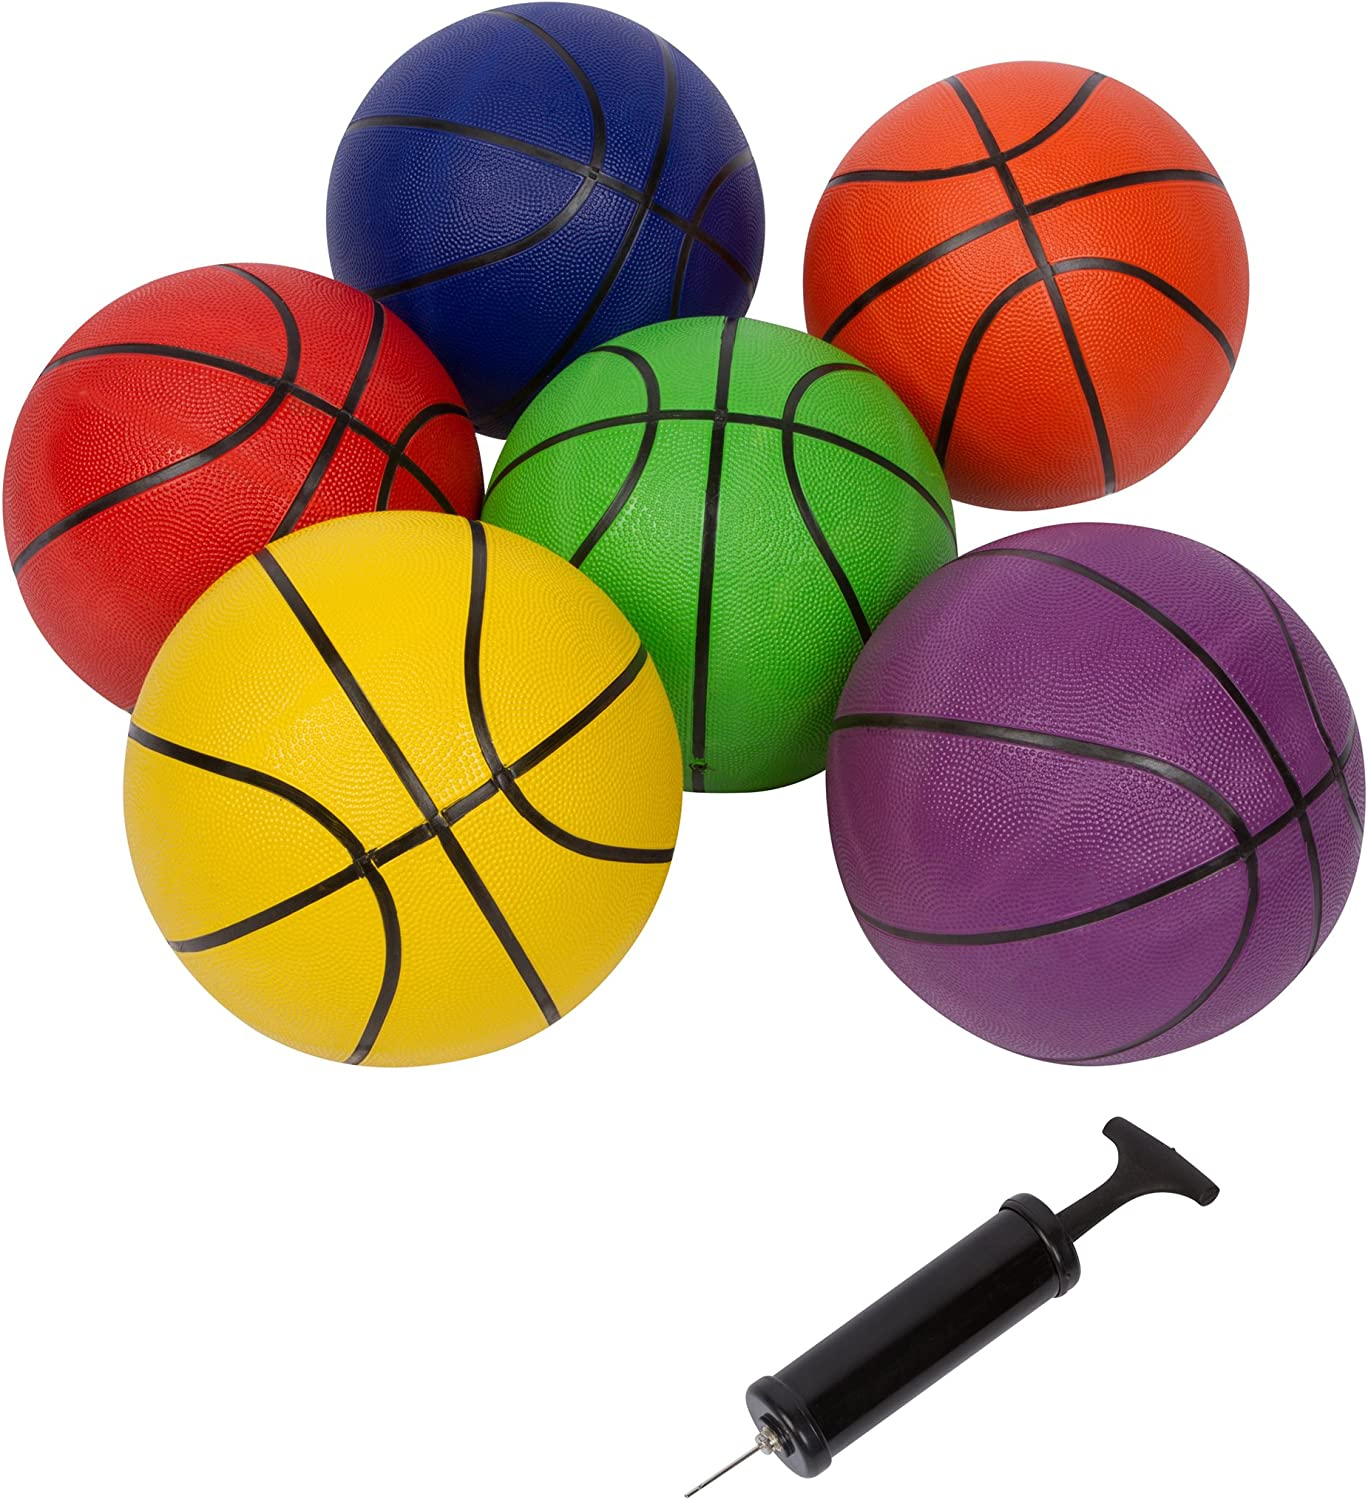 29.5 Size 7 Regulation Size Basketballs  Set of 6 Multicolor with Pump by Trademark Innovations